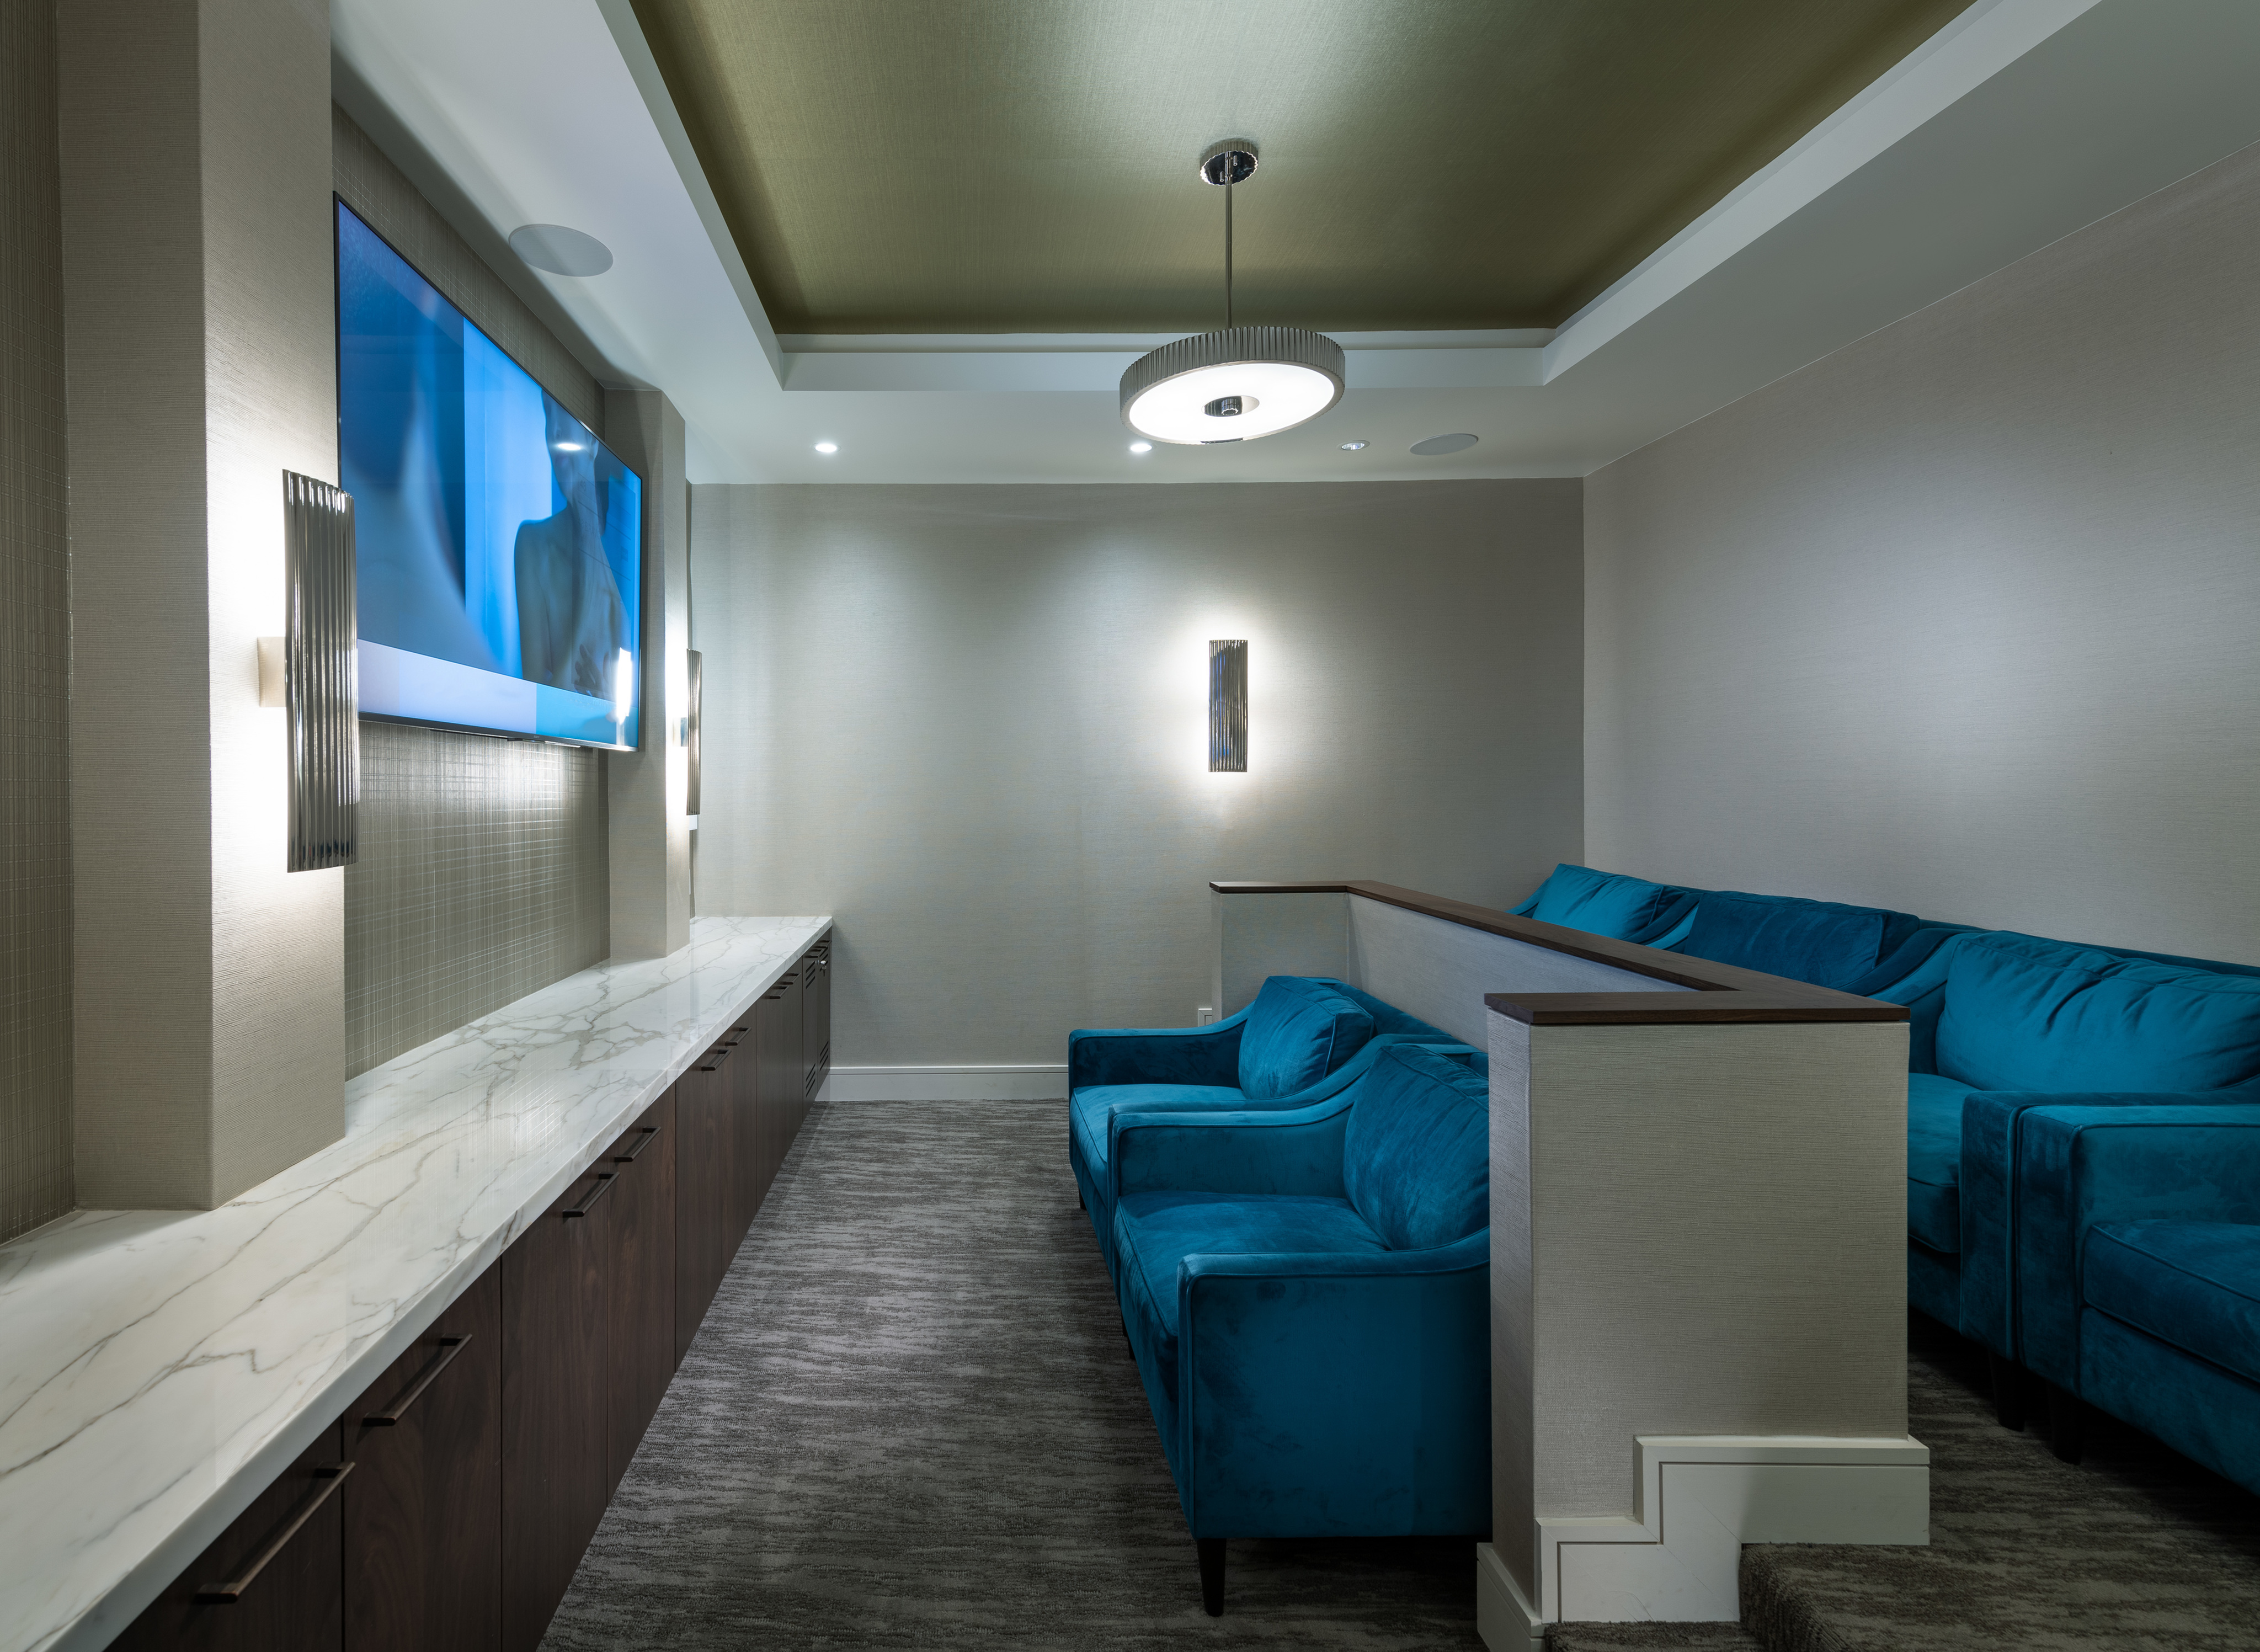 Private media room featuring surround-sound theater-style seating at Hanover Northgate